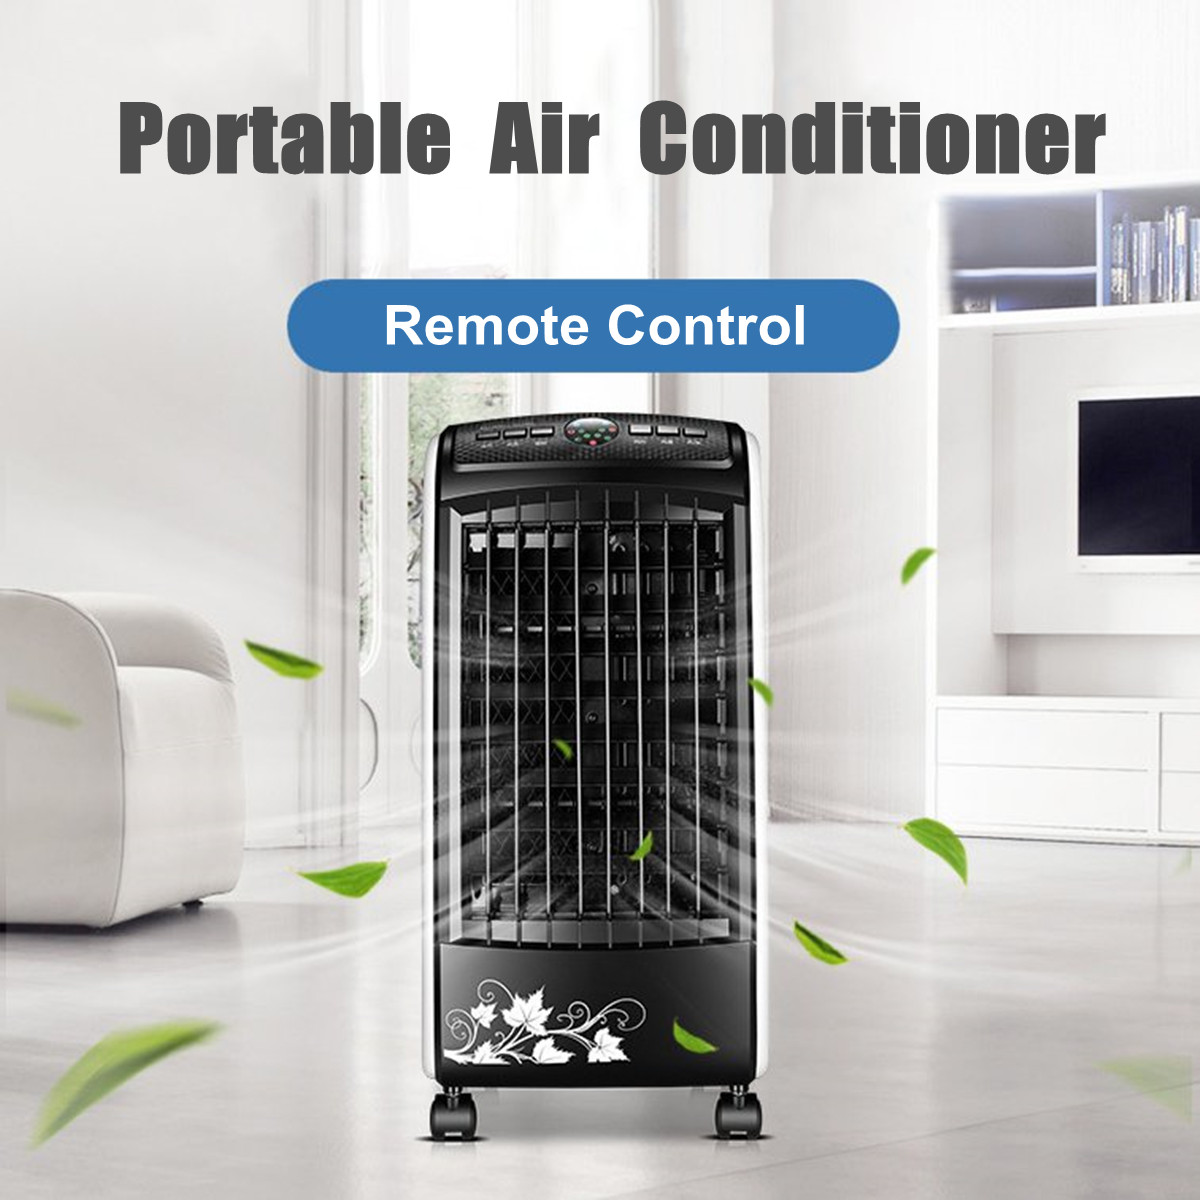 3 Level Portable Air Conditioner Conditioning Fan Humidifier Cooler Cooling System Mini Air Conditioner Cooling Fan Humidifier